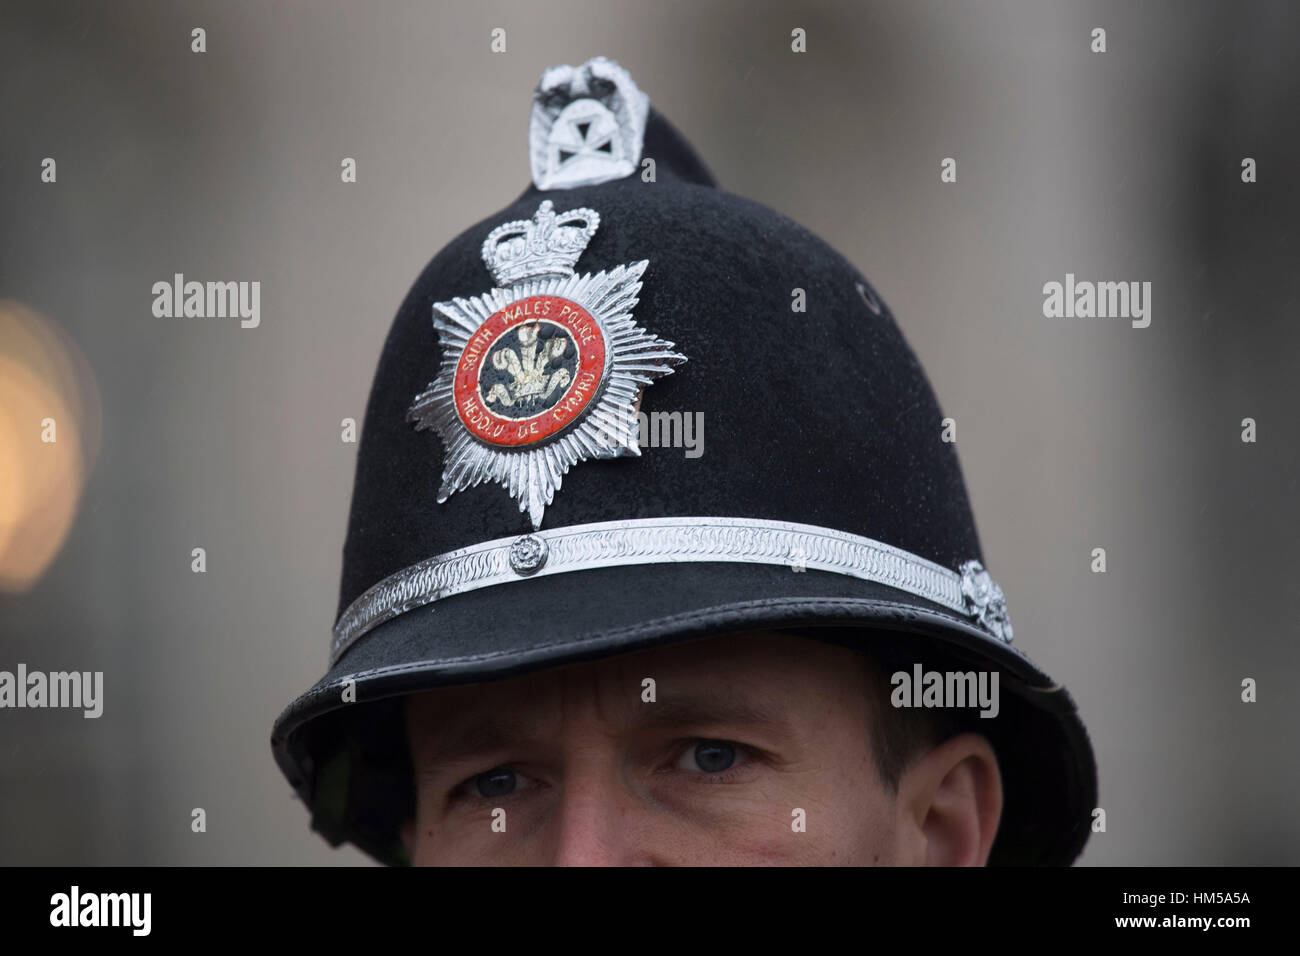 A south Wales police officer's helmet. - Stock Image